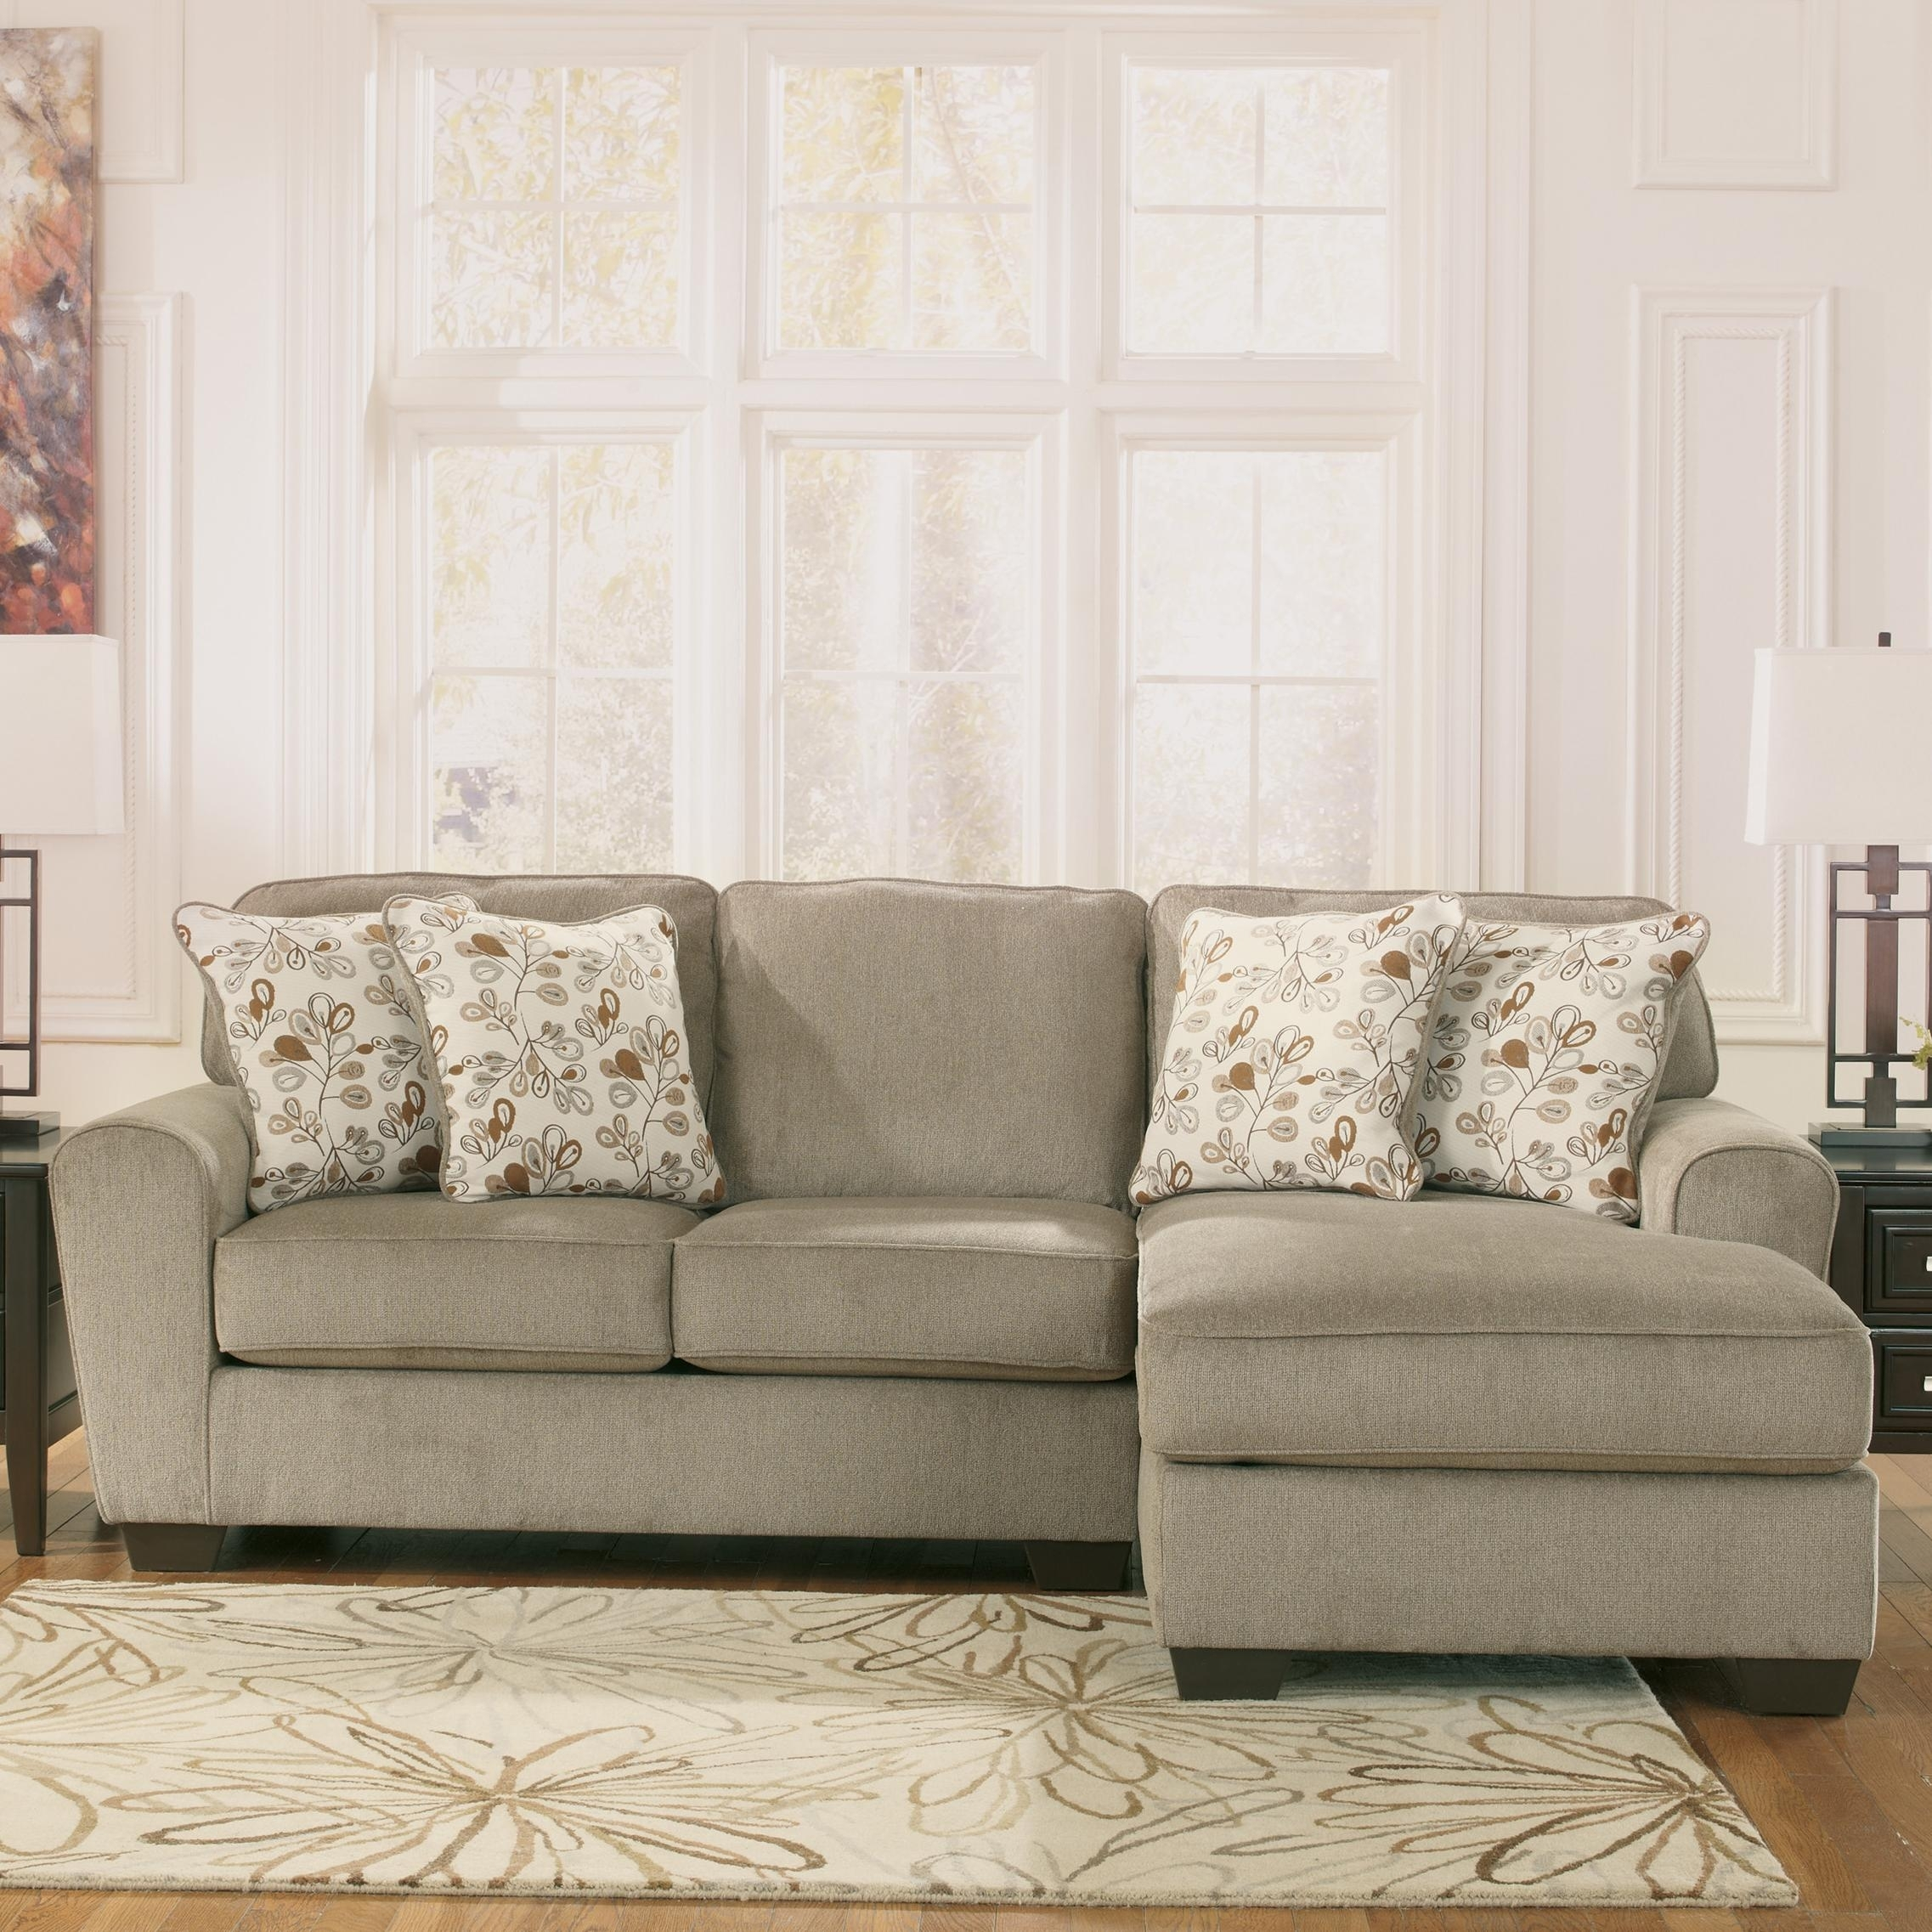 Top Sectional With 2 Chaise Lounges &yz44 – Roccommunity throughout Arrowmask 2 Piece Sectionals With Laf Chaise (Image 30 of 30)